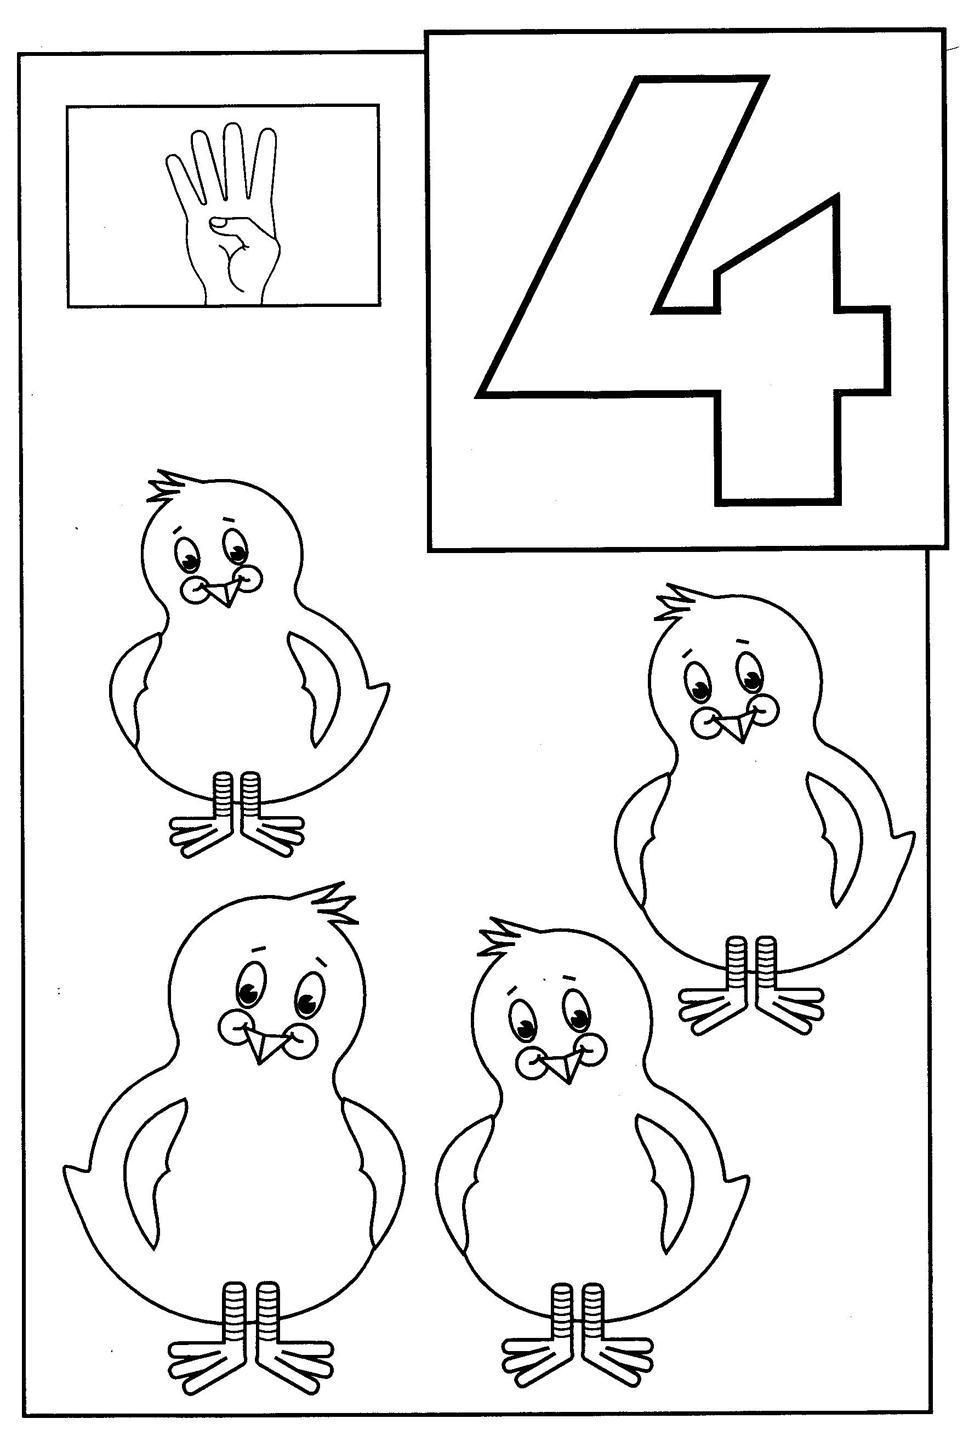 8 Printable Colouring Books For Toddlers Printable Coloring Book Toddler Coloring Book Coloring Books